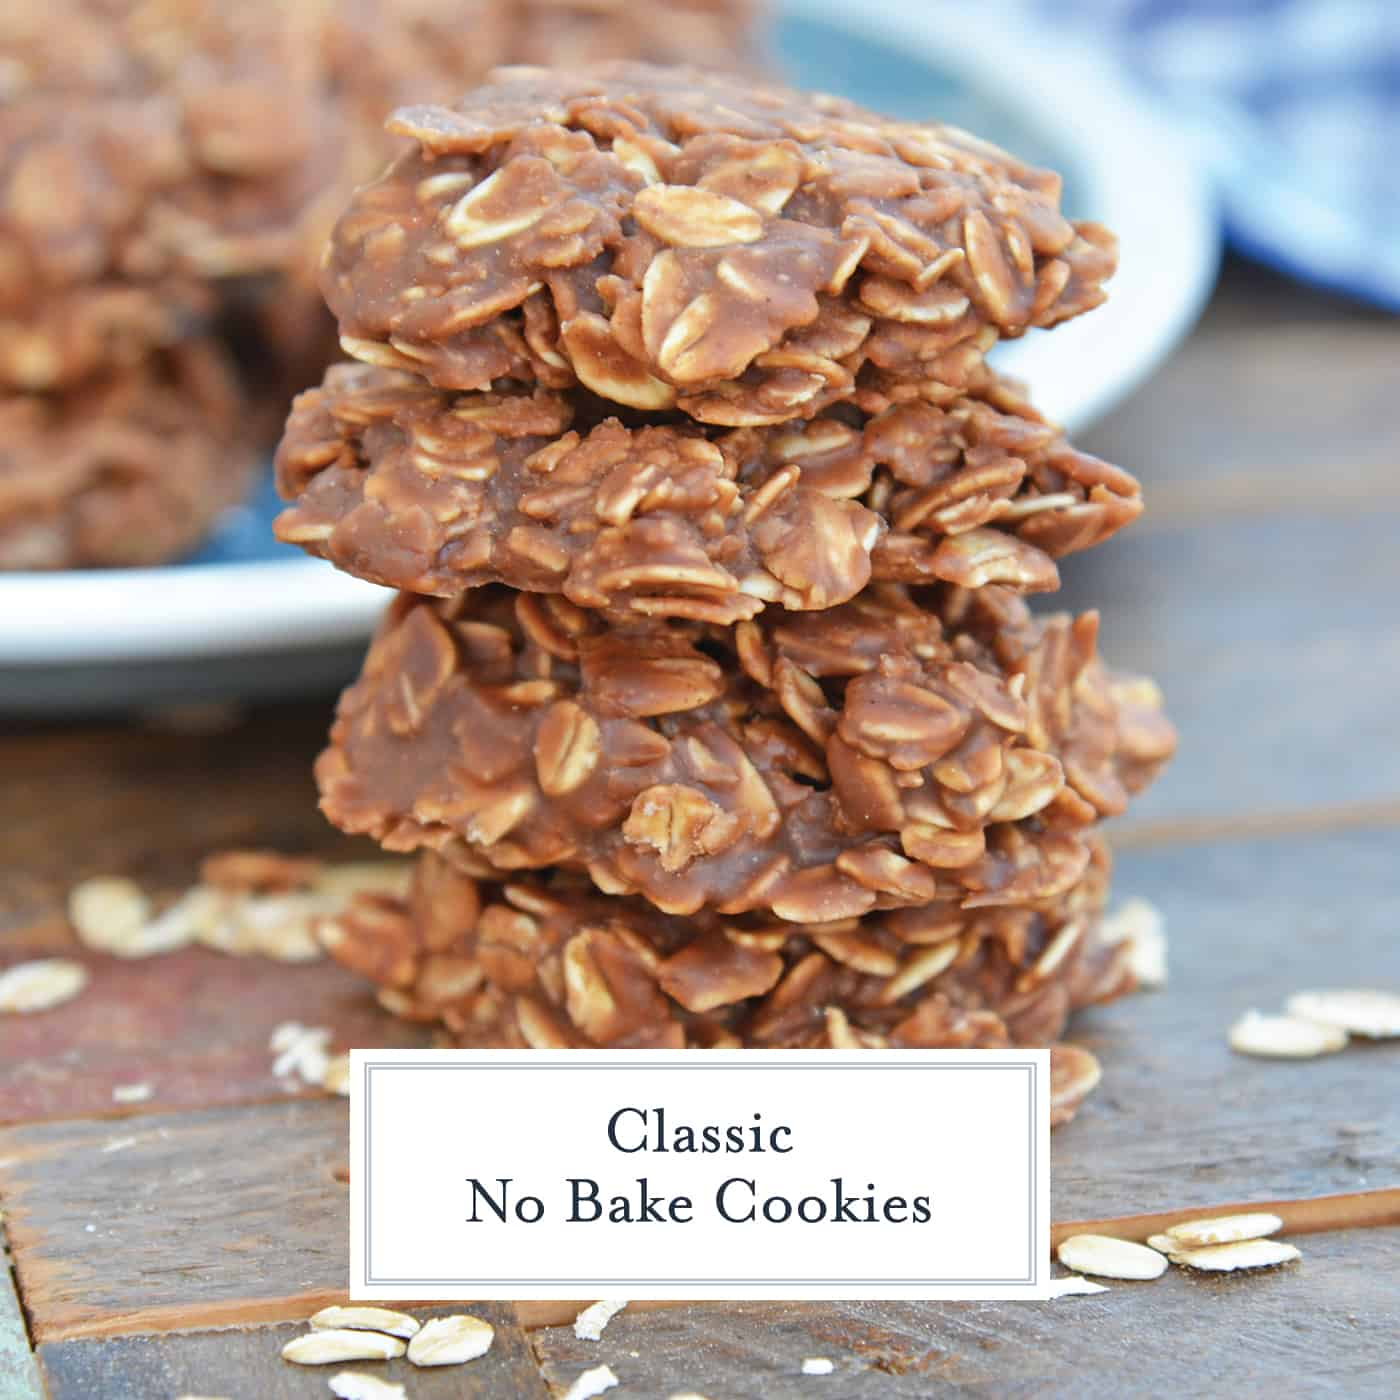 If you've always thought oatmeal no bake cookies were difficult, this classic no bake cookie recipe will change your mind. With these tips, you'll end up with the perfect peanut butter no bake cookies every time! #oatmealnobakecookies #classicnobakecookies www.savoryexperiments.com